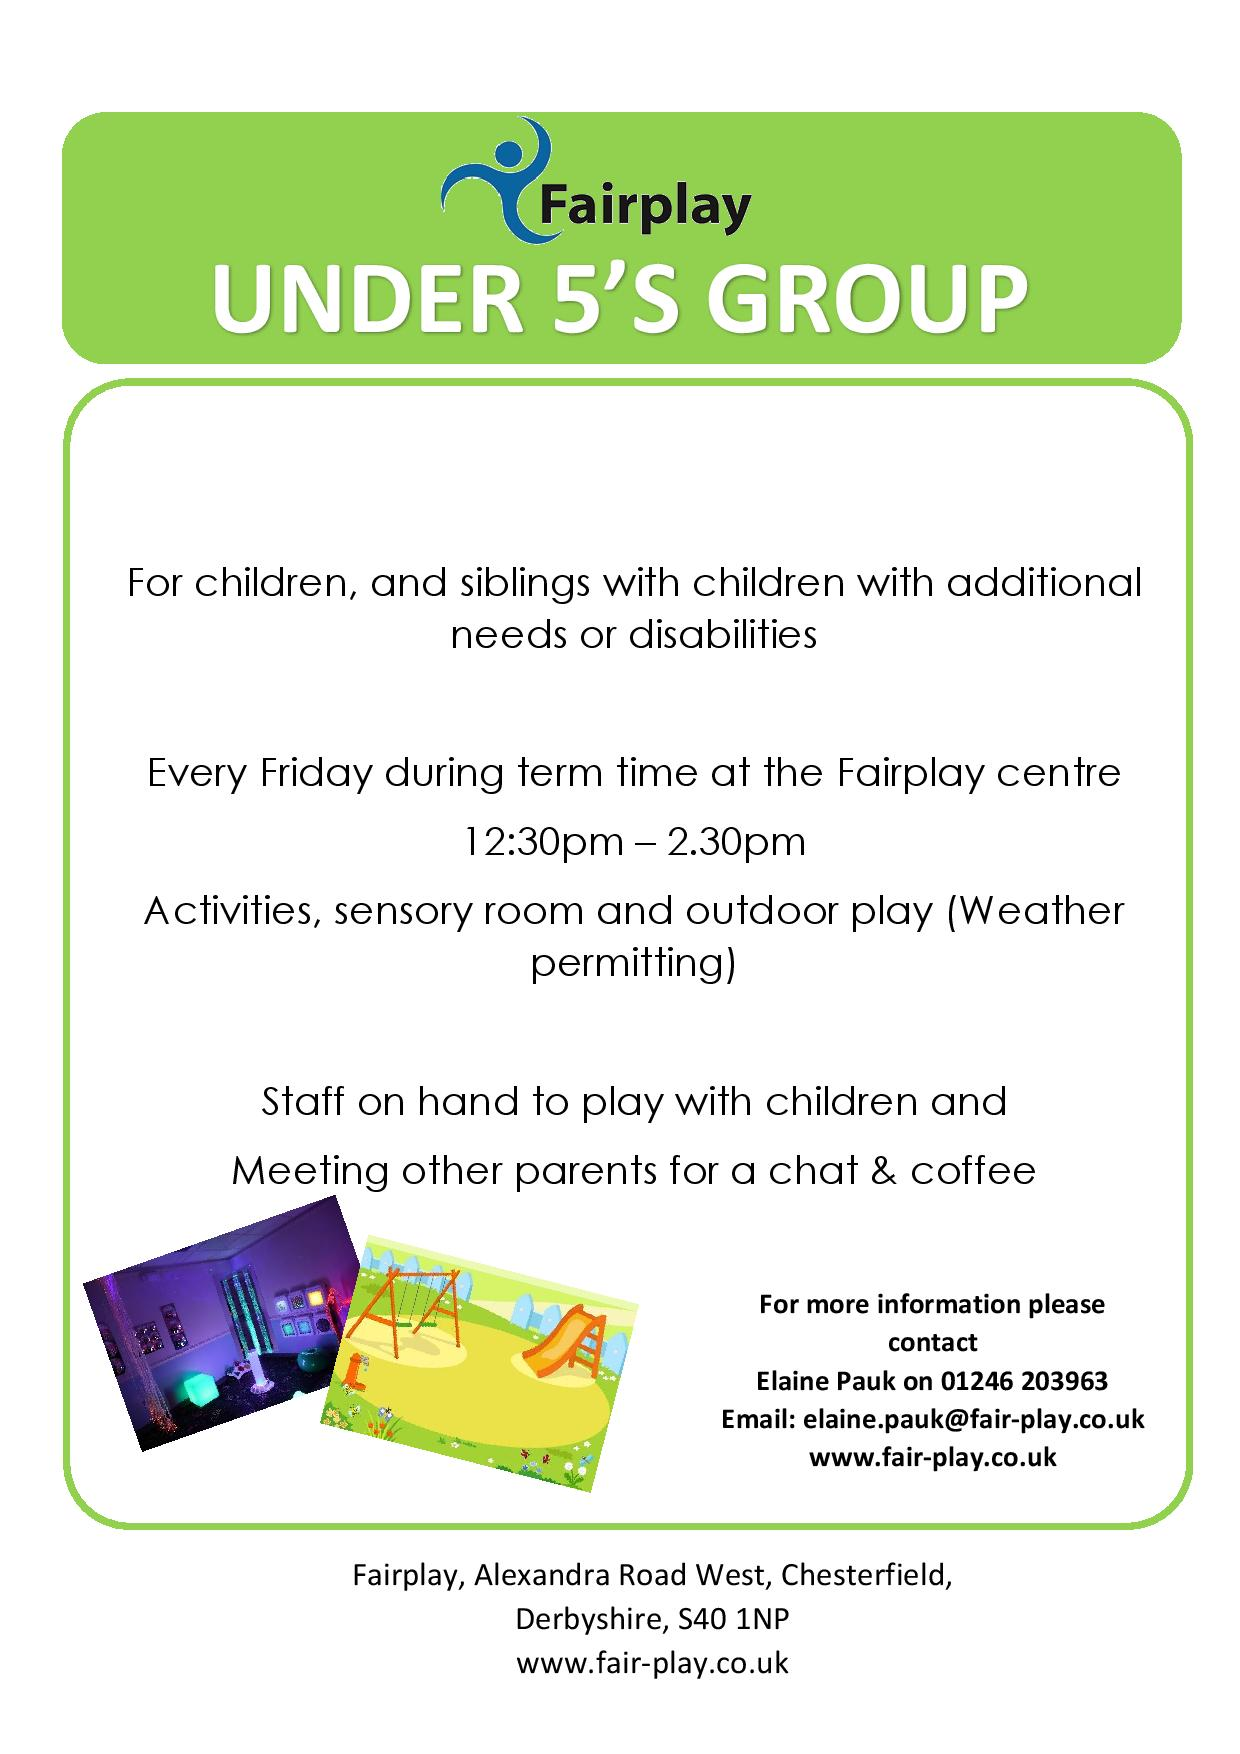 Under 5's Group